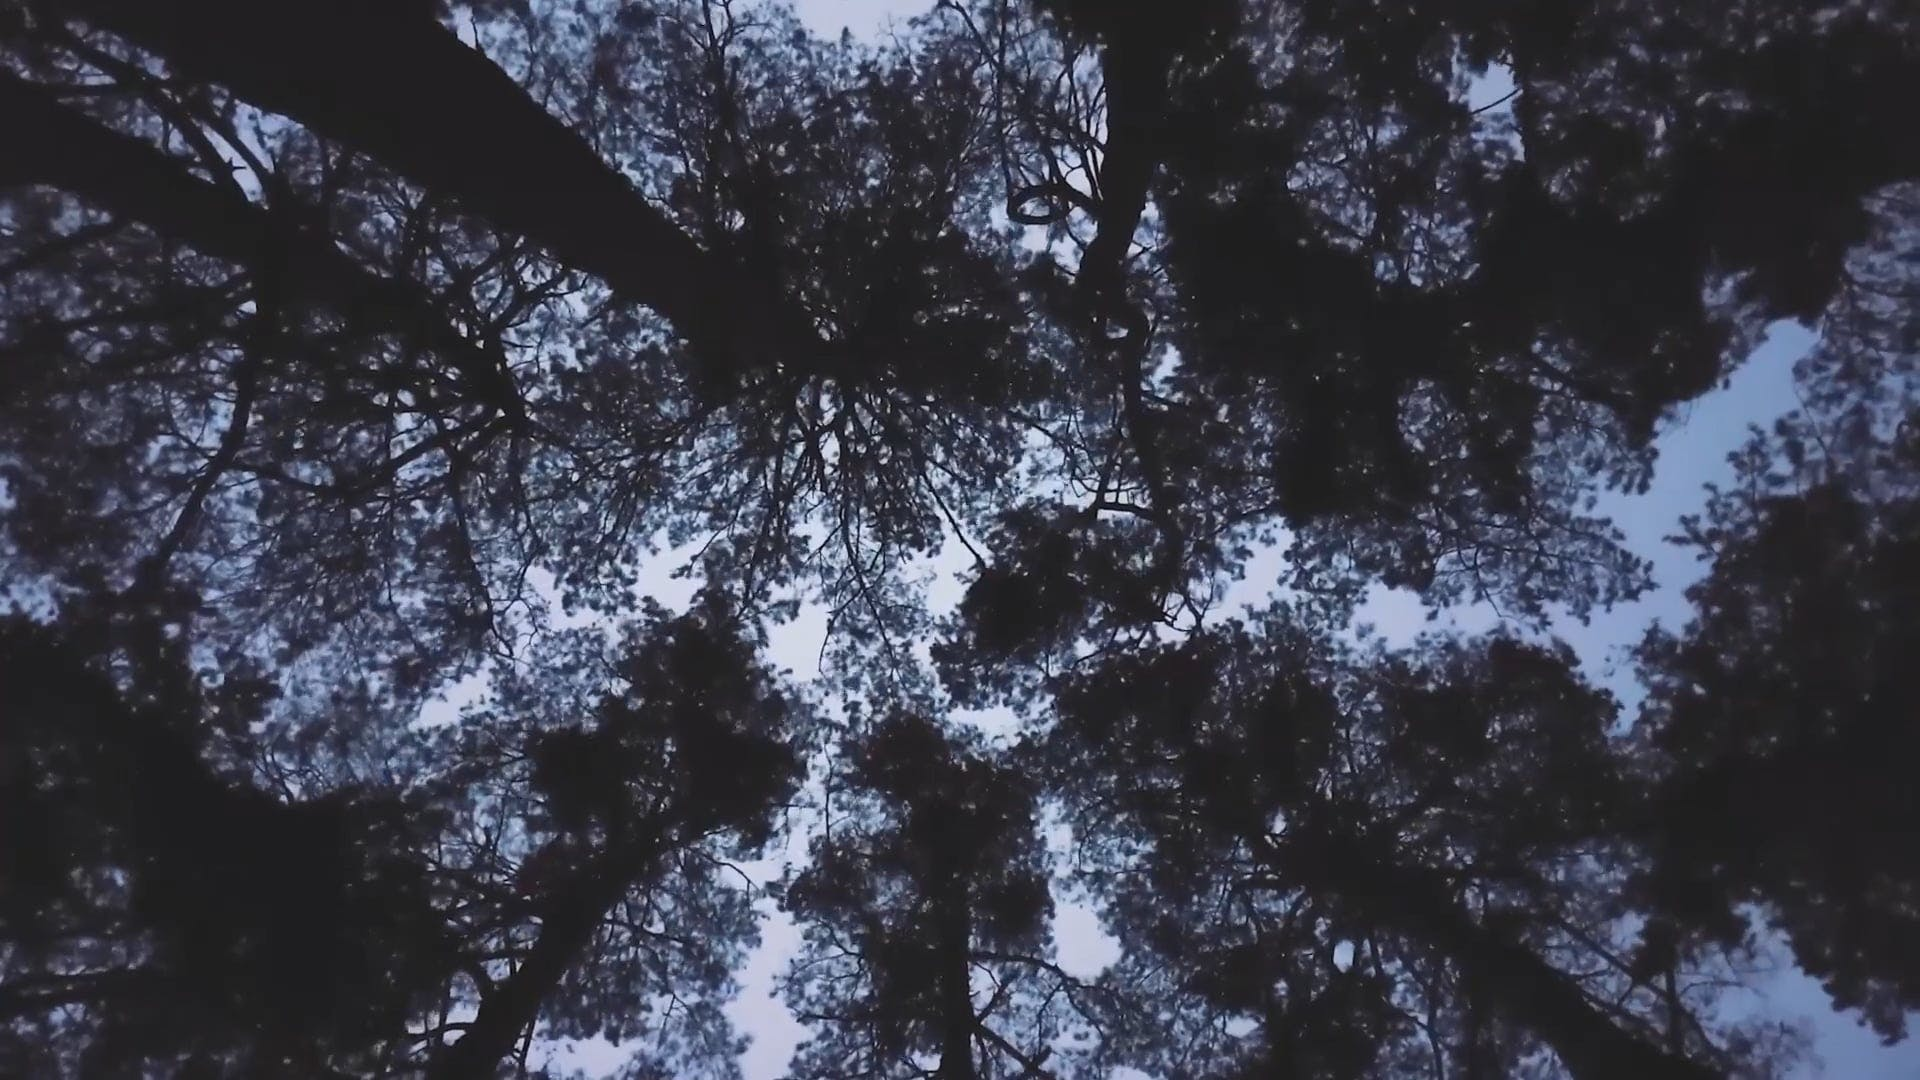 Video Of Trees From Below